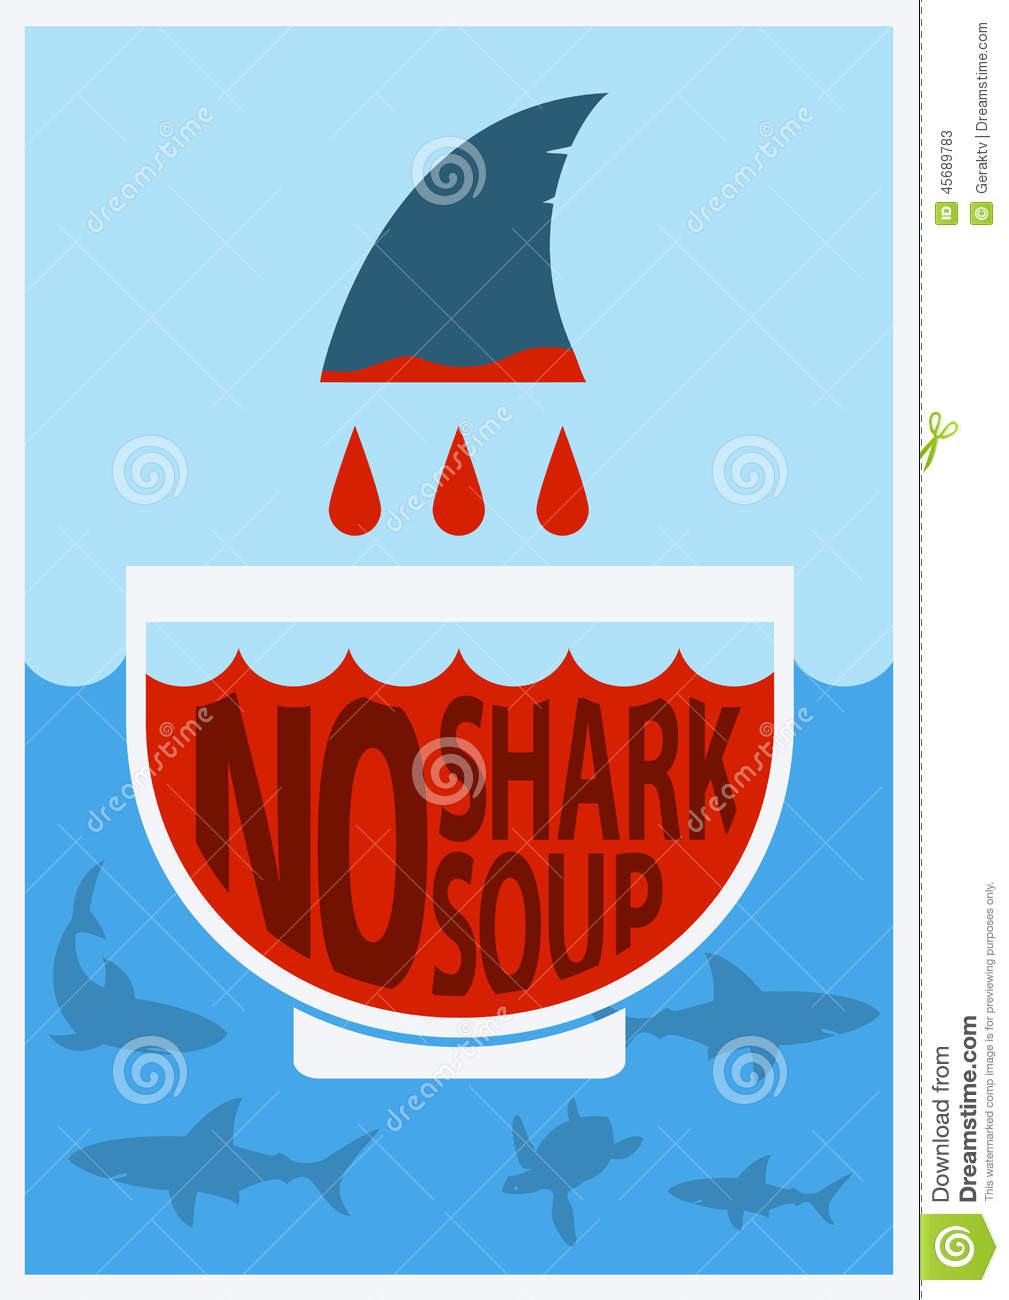 shark finning should be stopped Shark finning should be stopped nowadays, over 73 million of sharks of various species are being caught and killed worldwide each year due to the increasing demand for shark fin.